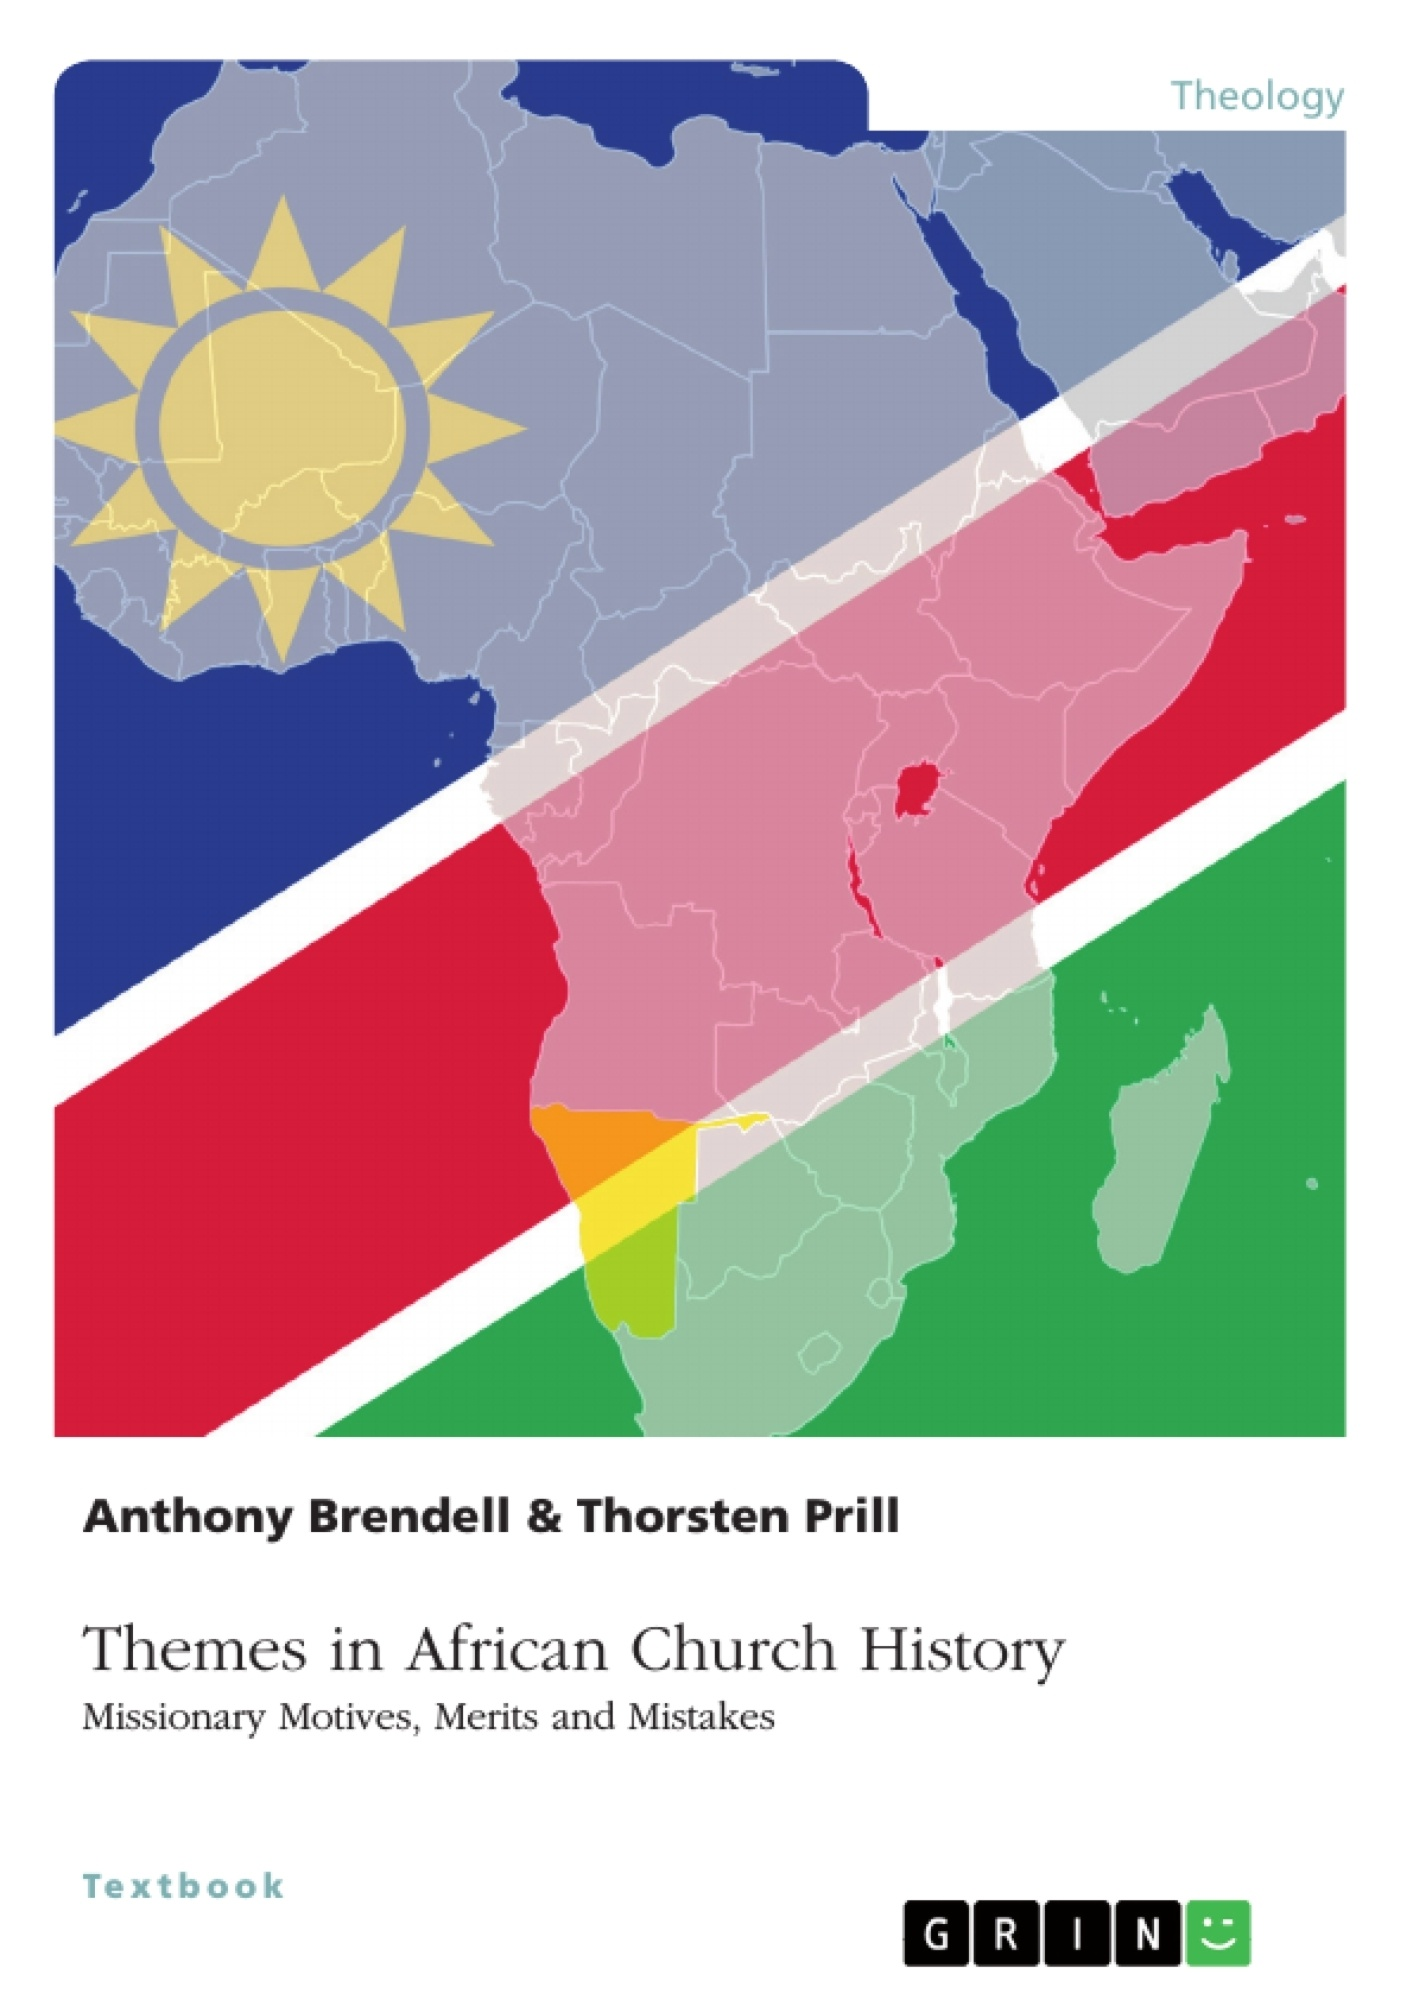 Title: Themes in African Church History. Missionary Motives, Merits and Mistakes